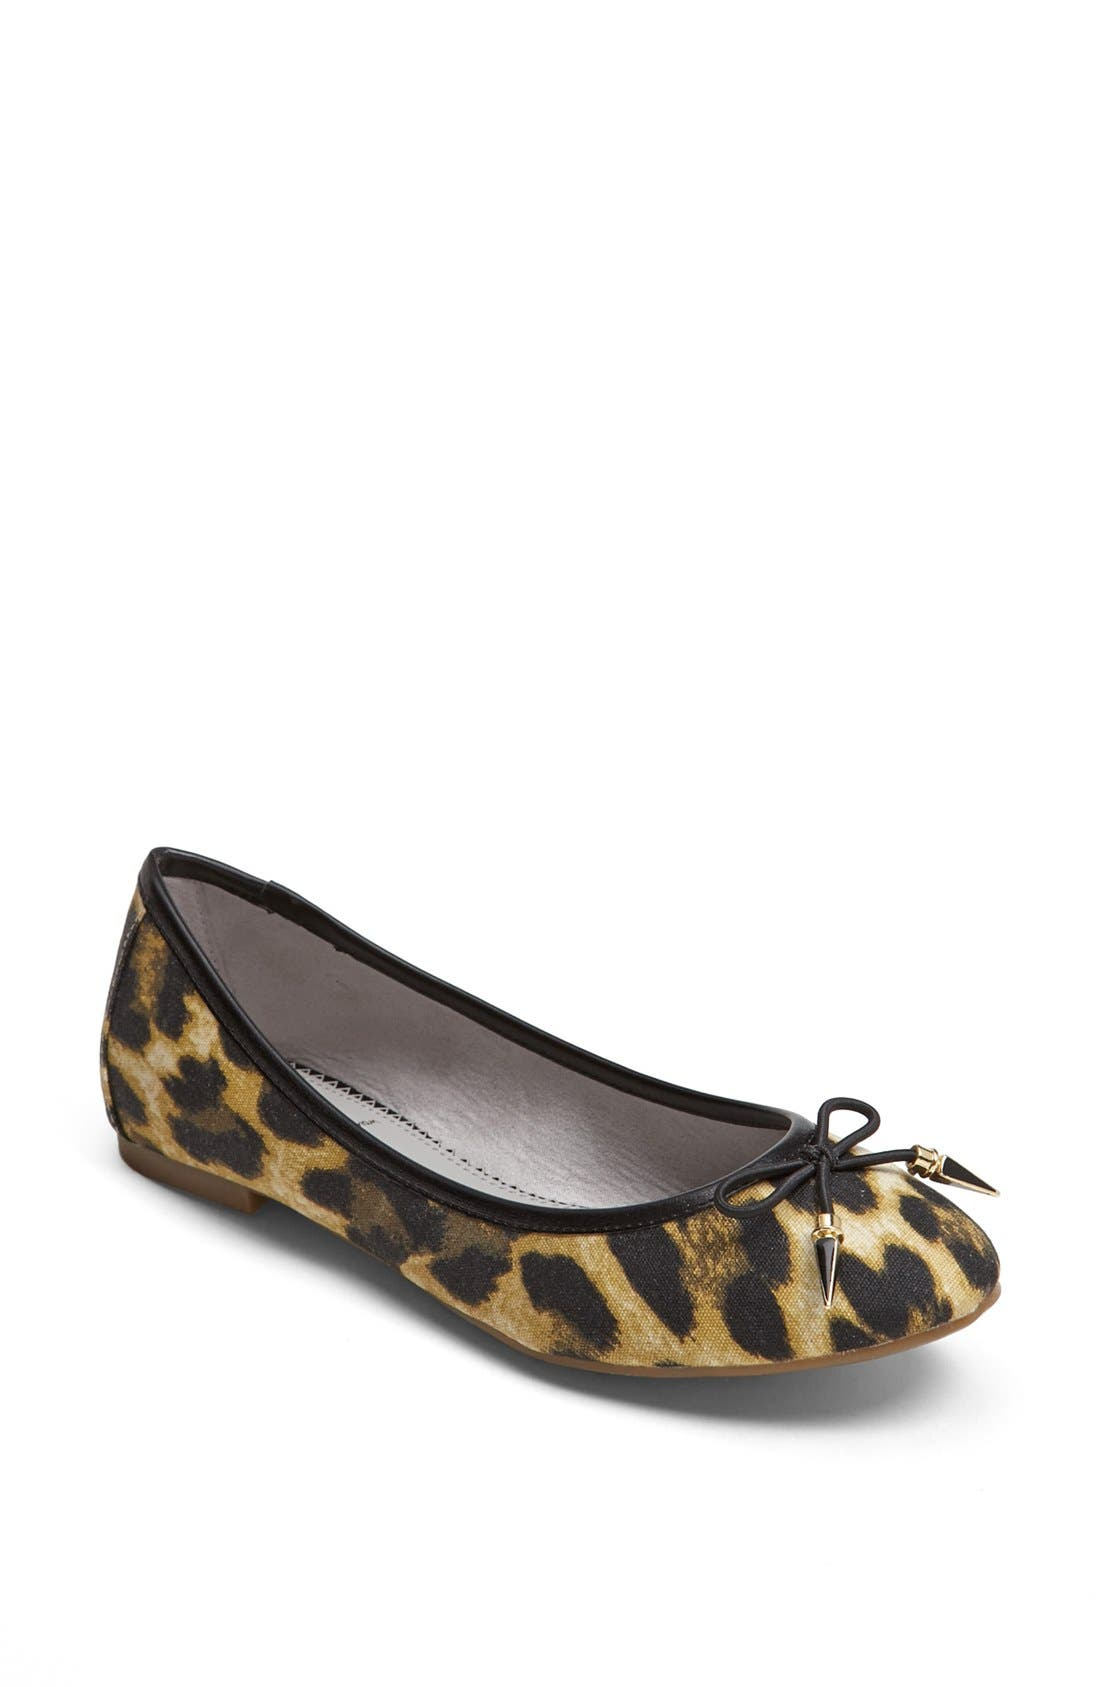 Alternate Image 1 Selected - Circus by Sam Edelman 'Ali' Flat